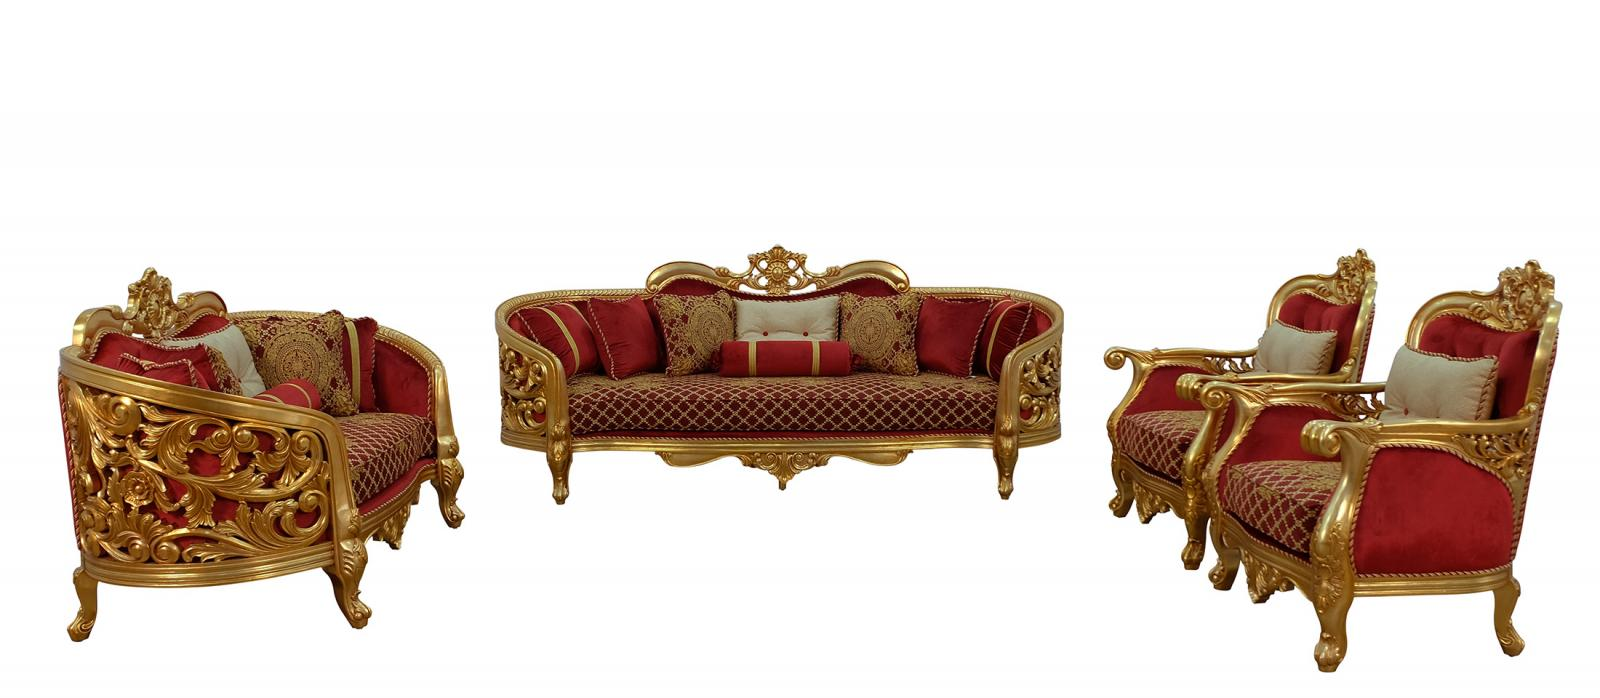 Classic  Traditional Gold  Antique   Red Wood  Solid Hardwood and Velvet Sofa Set EUROPEAN FURNITURE 30013-S-Set-4